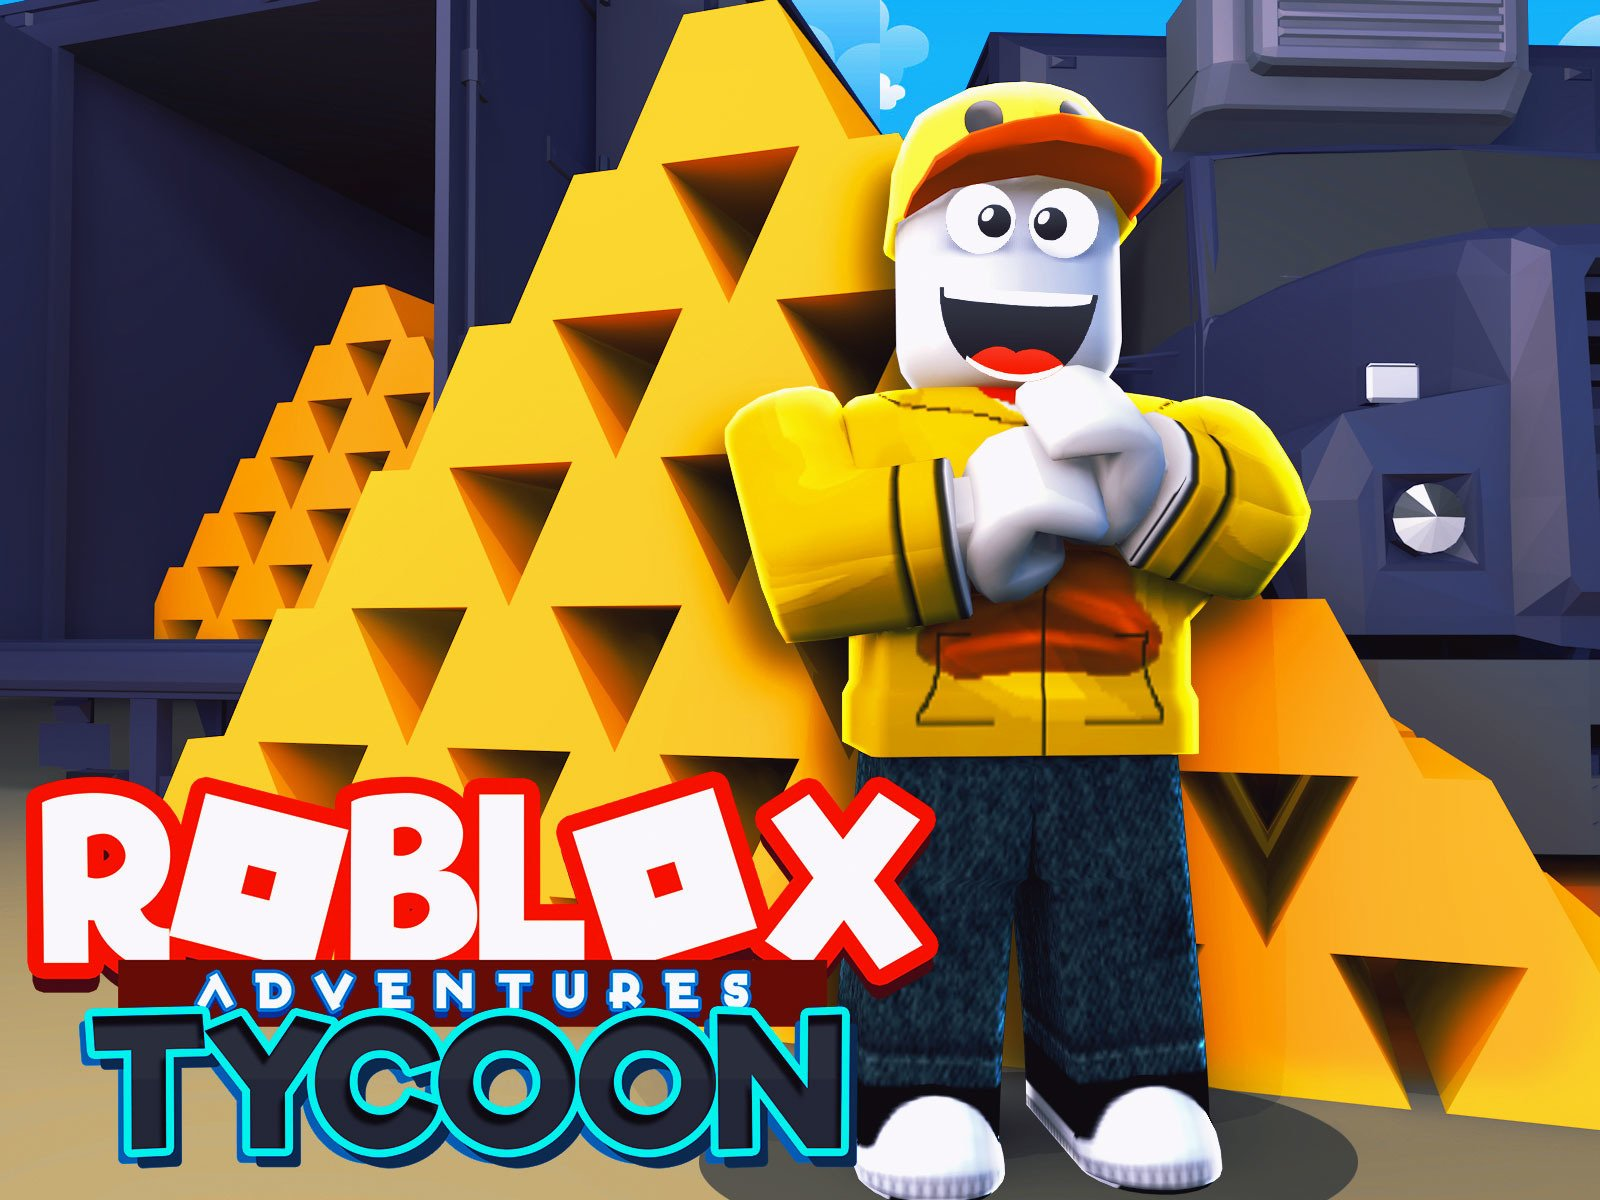 Amazoncom Watch Clip Roblox Tycoon Adventures Prime Video - roblox creature tycoon fusions list